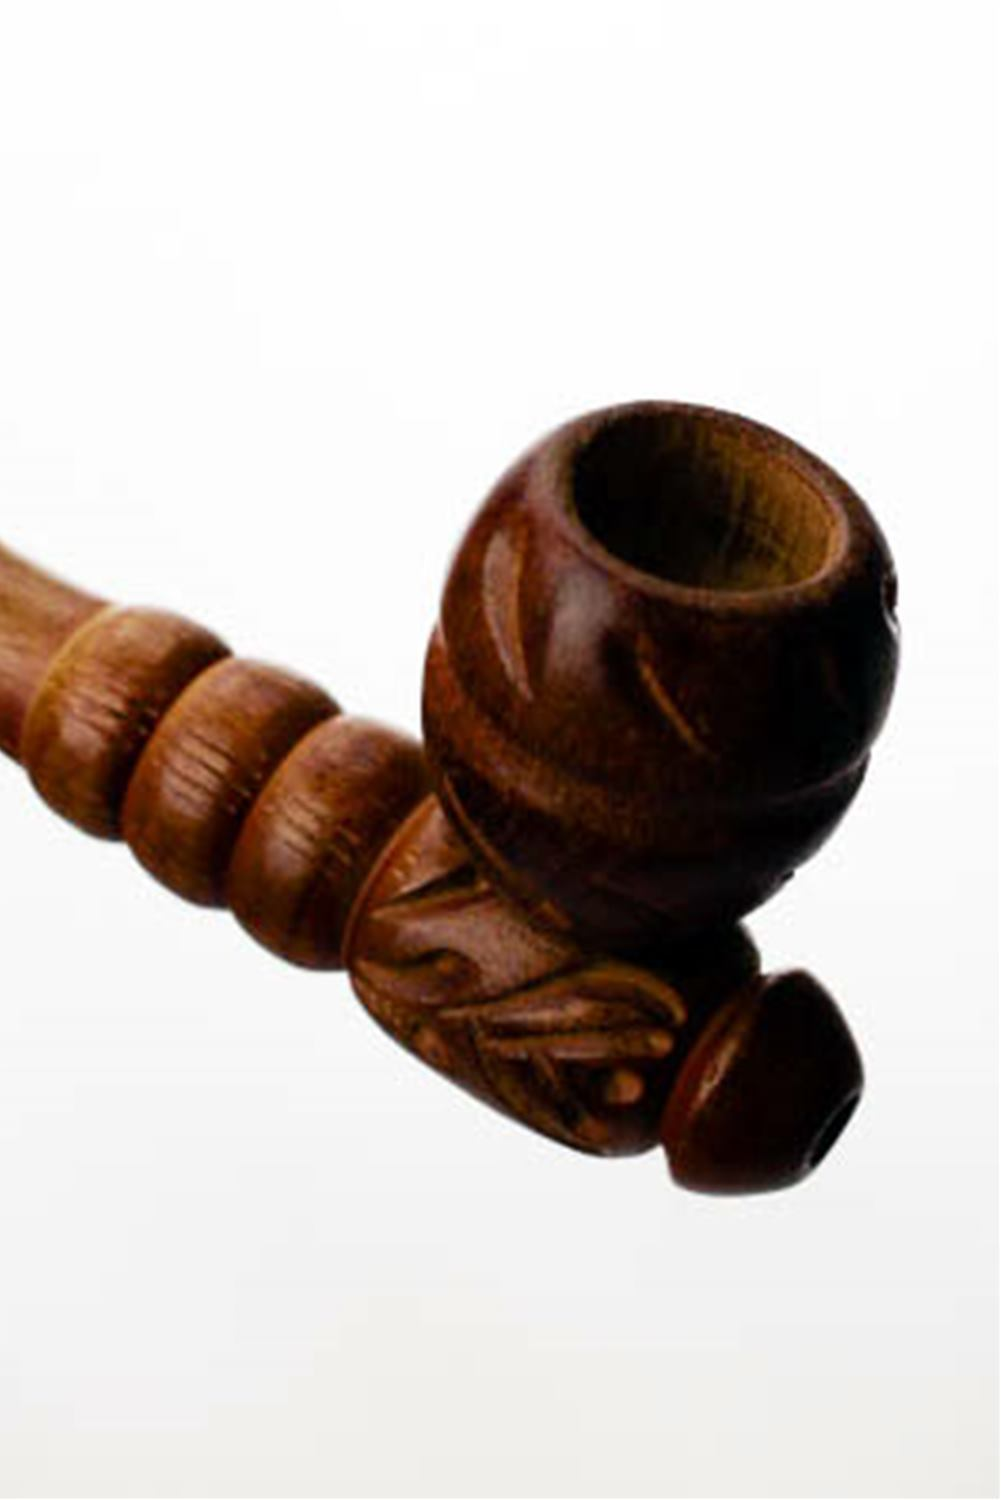 Beautiful pattern carved wooden pipe - One wholesale Canada